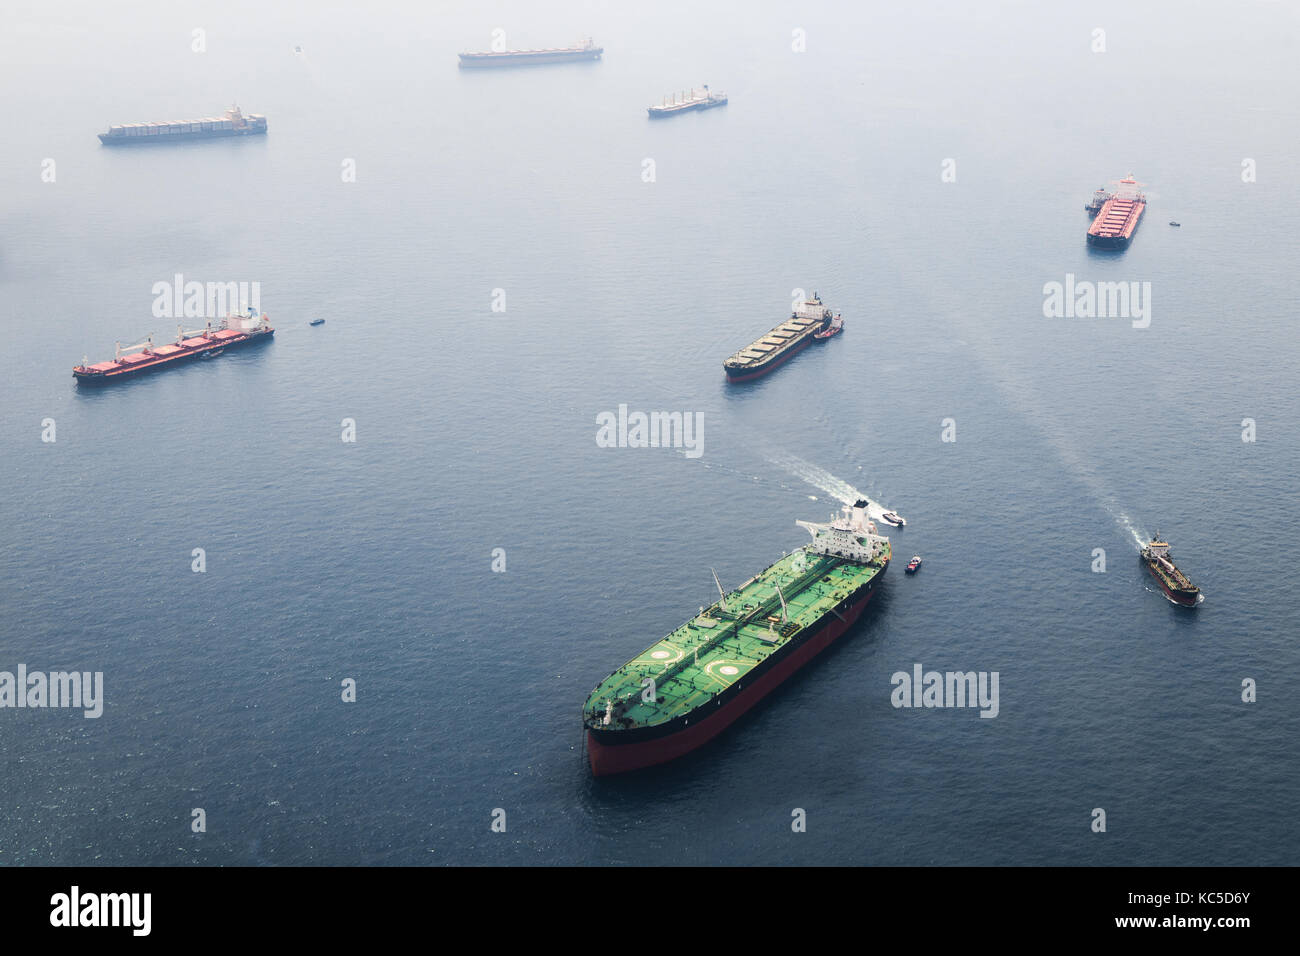 Ships in Straits of Singapore from the height. Big tanker with two helicopter platforms stay on anchor and wait - Stock Image